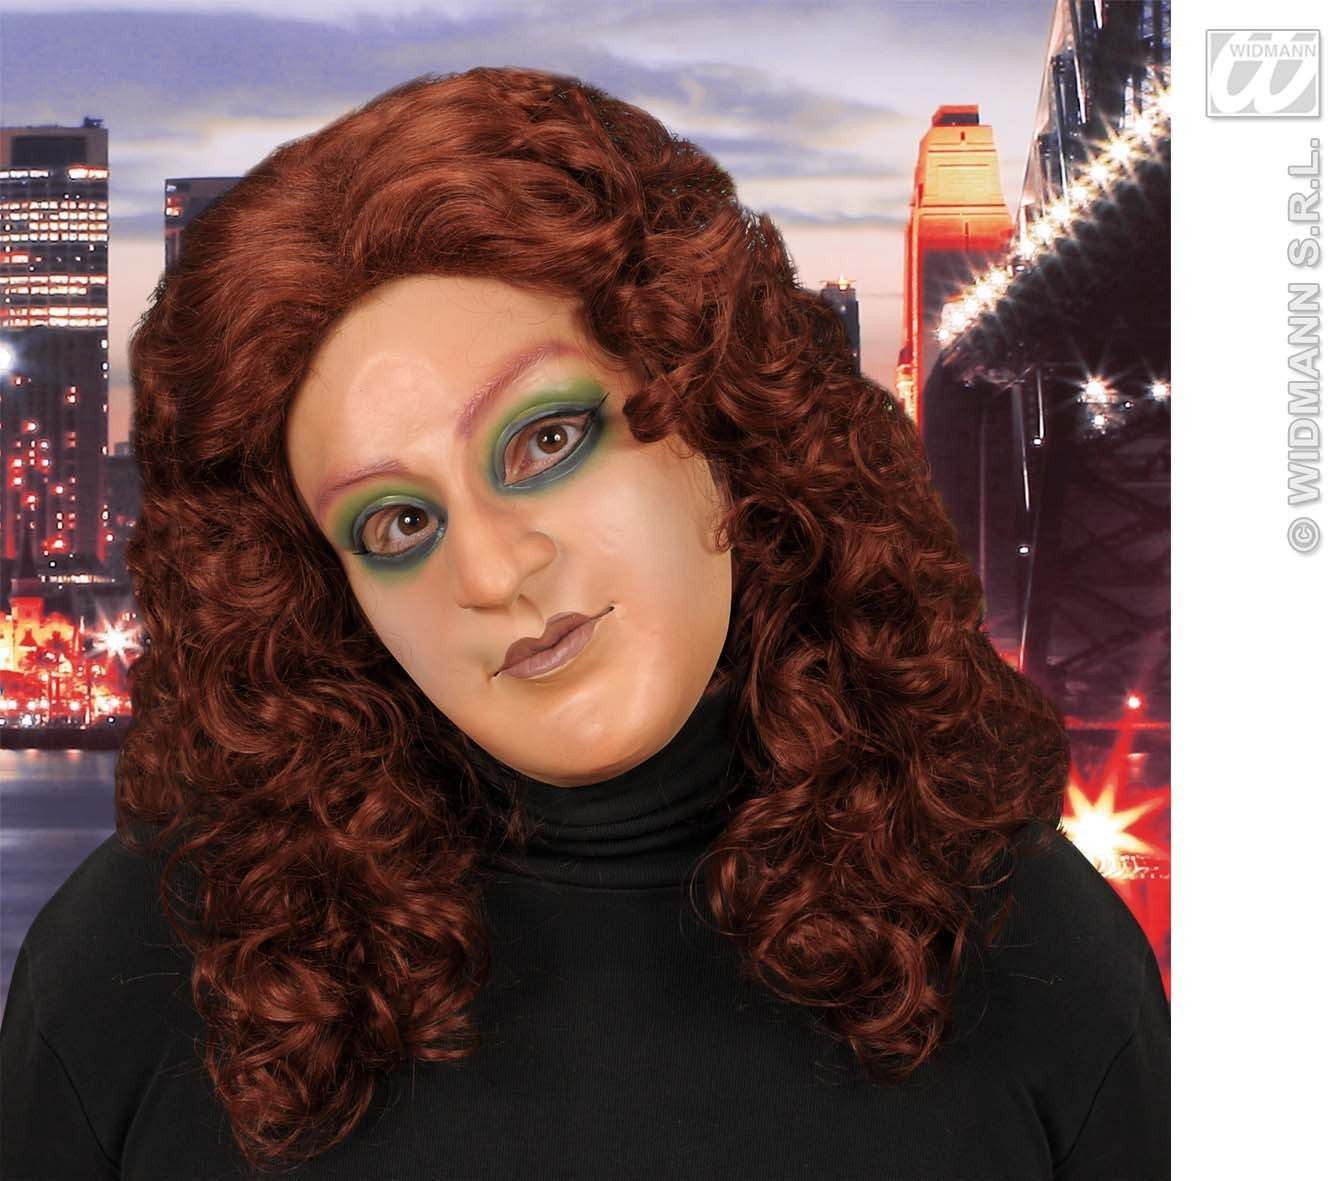 Half - Face Mask - Young Woman - Fancy Dress Ladies